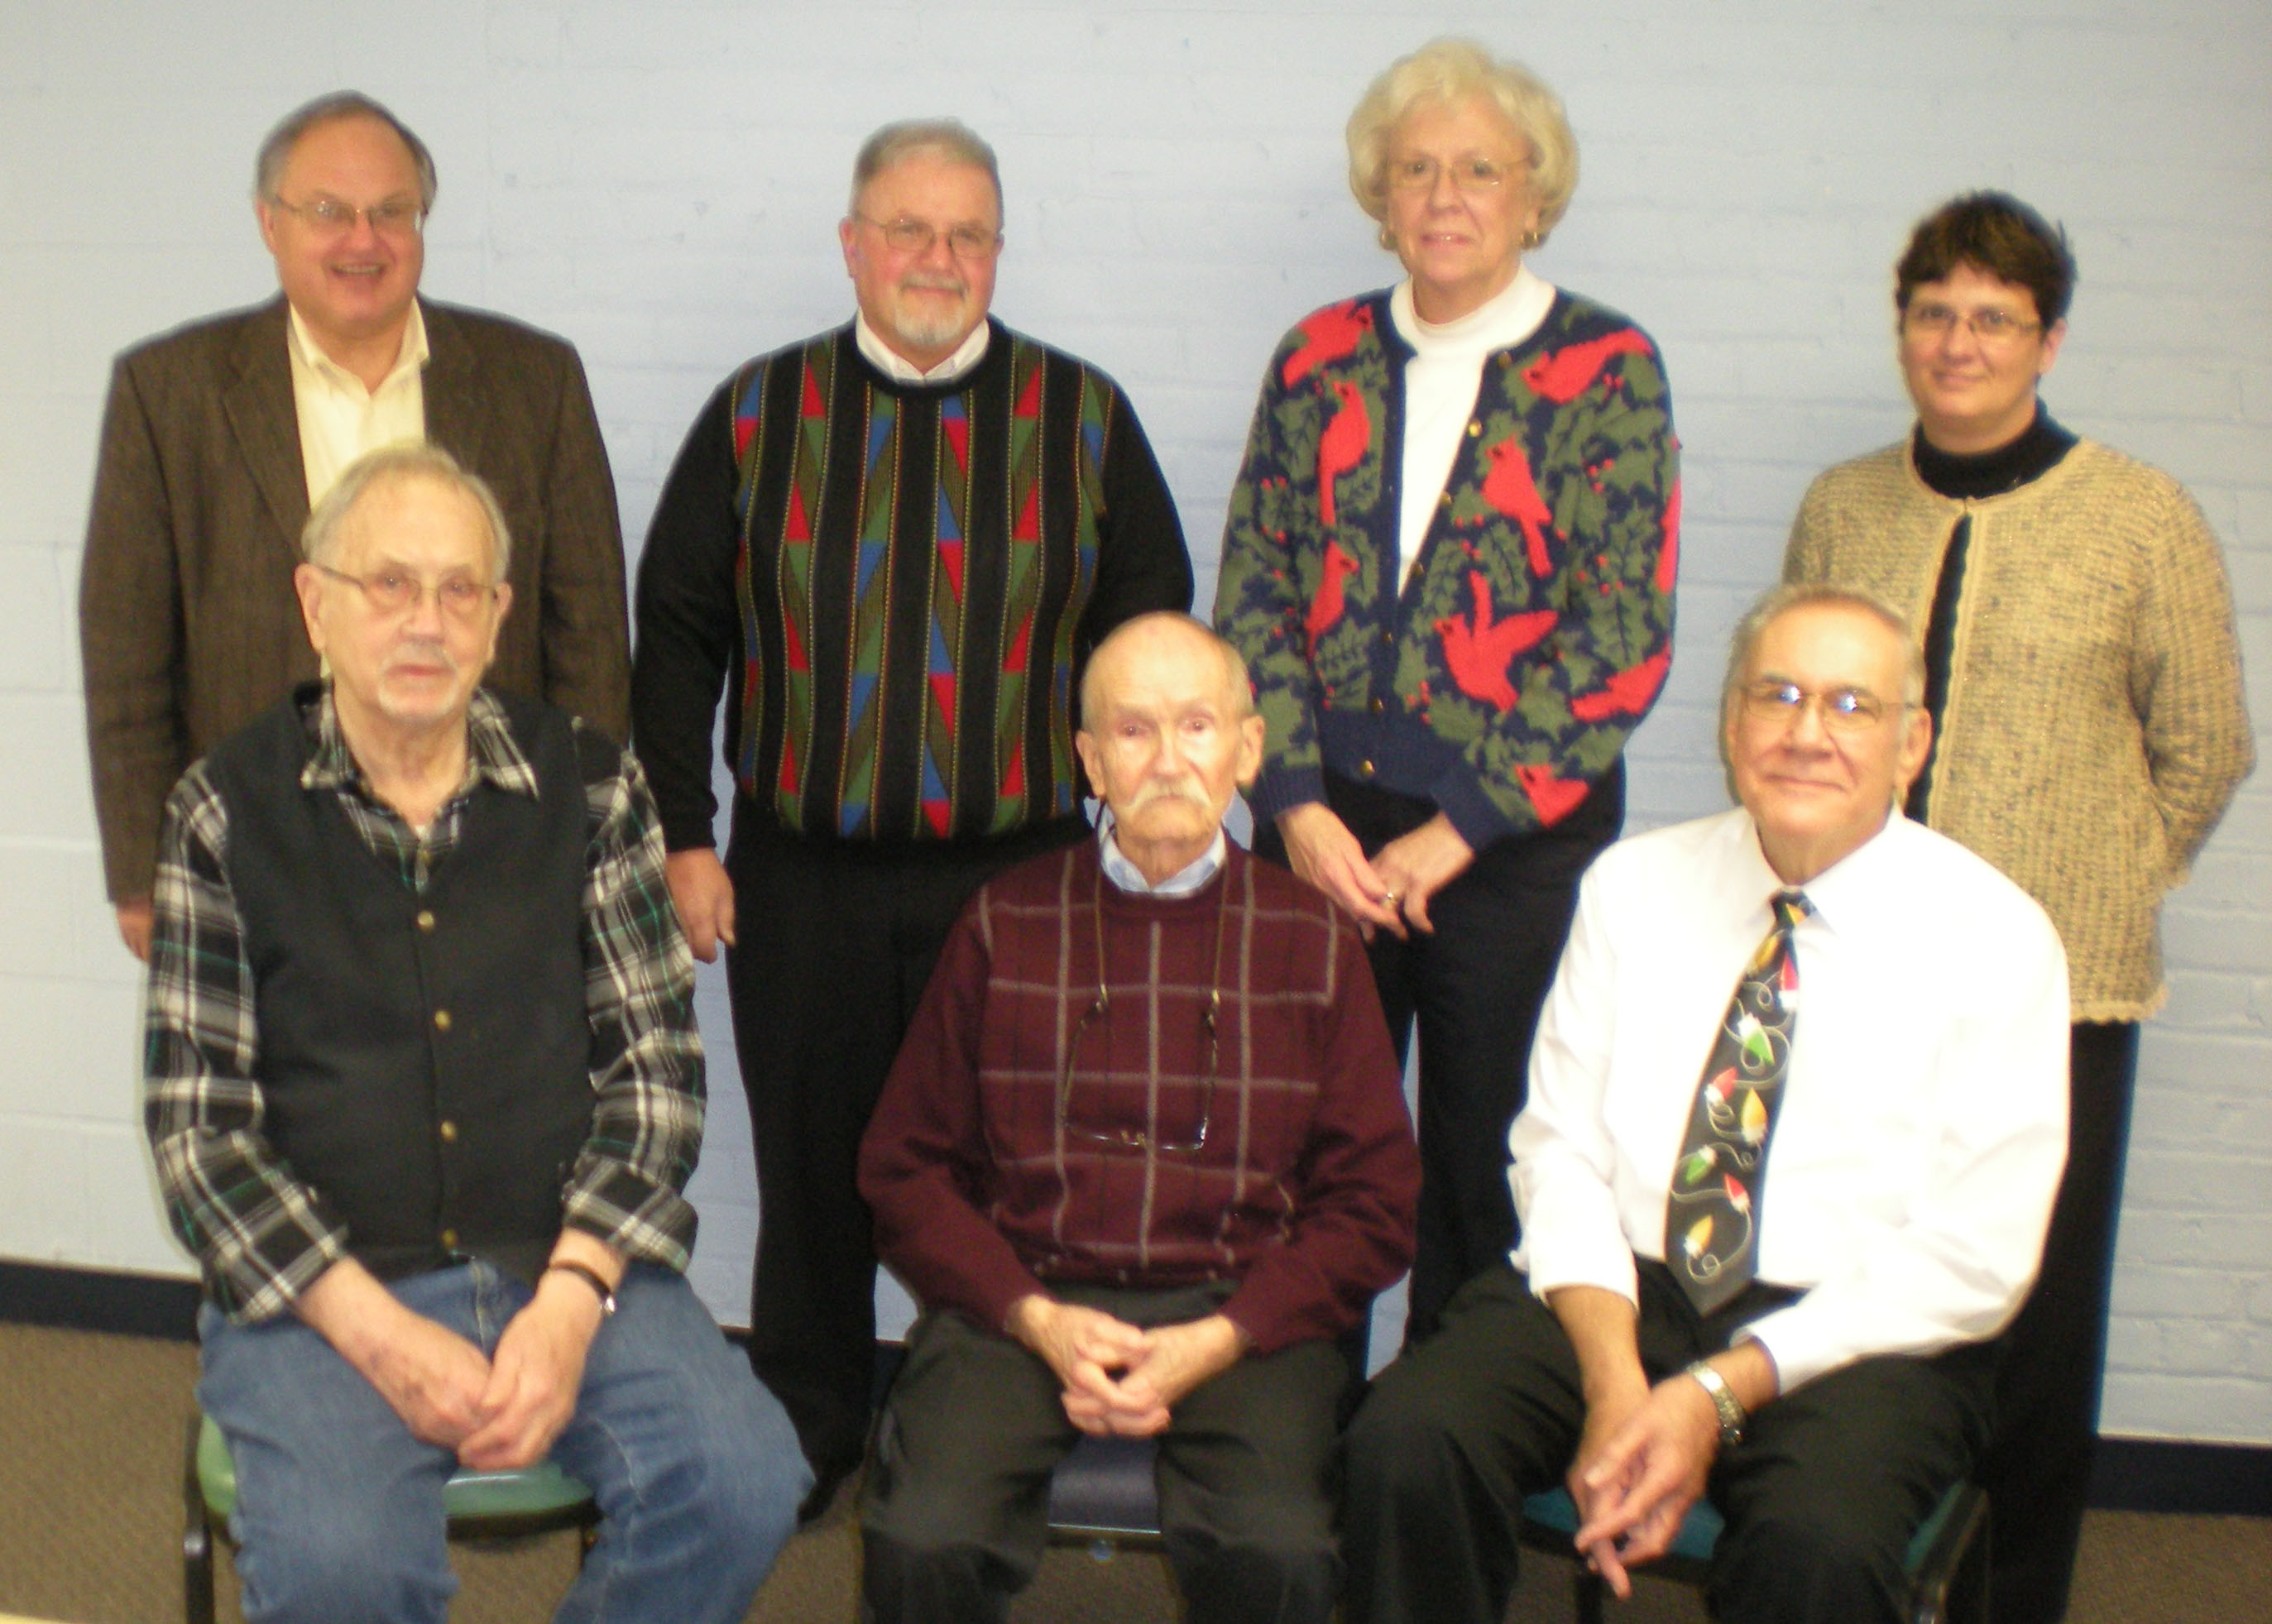 Wood County Committee on Aging, Inc. Holds Annual Meeting